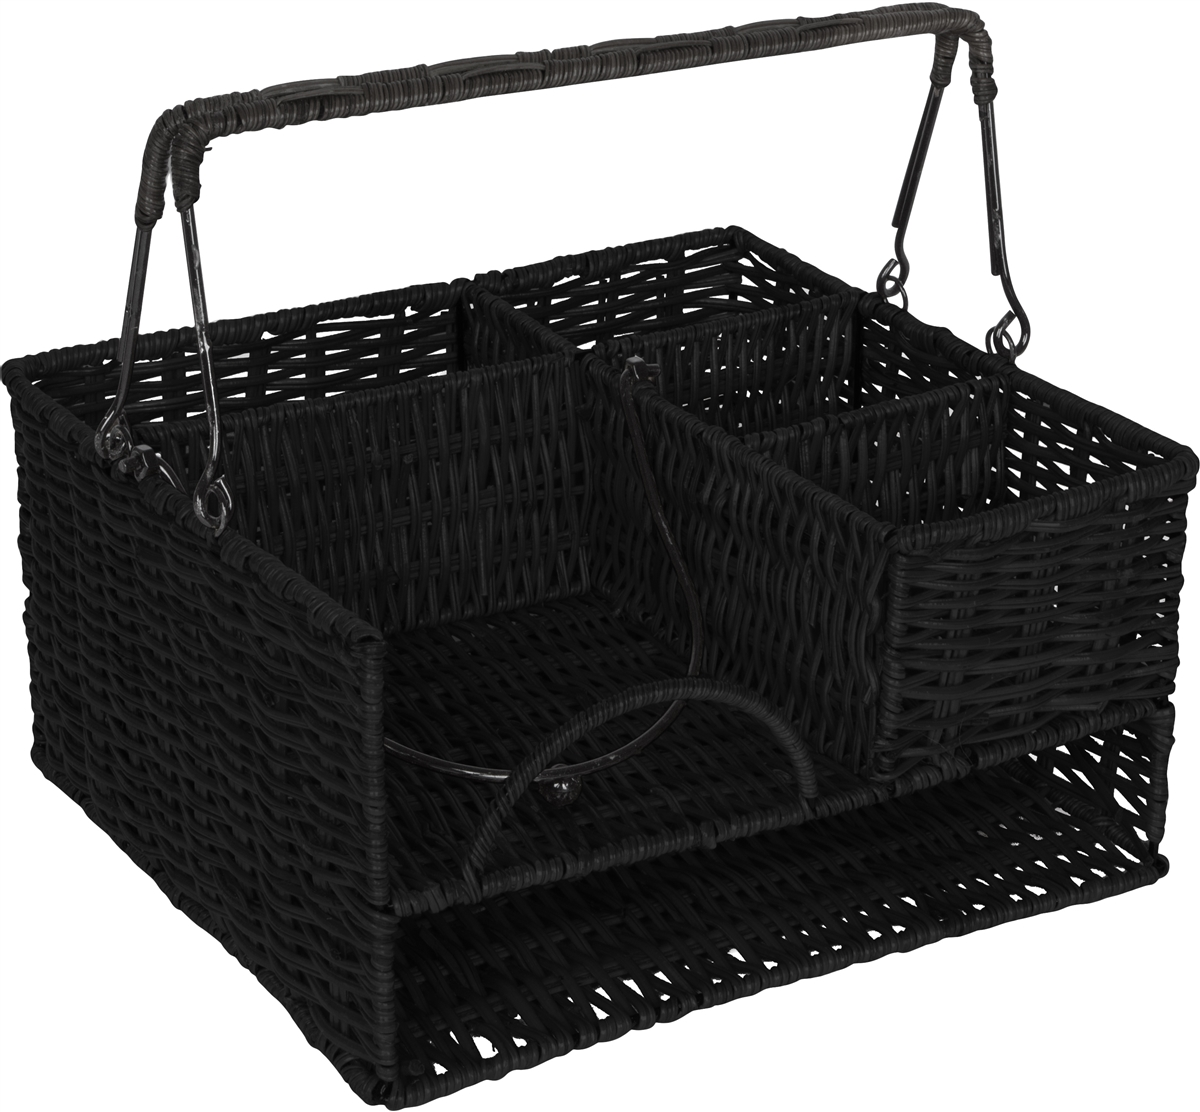 Merveilleux Rattan Tabletop Serveware And Condiment Organizer And Caddy By Trademark  Innovations (Black)